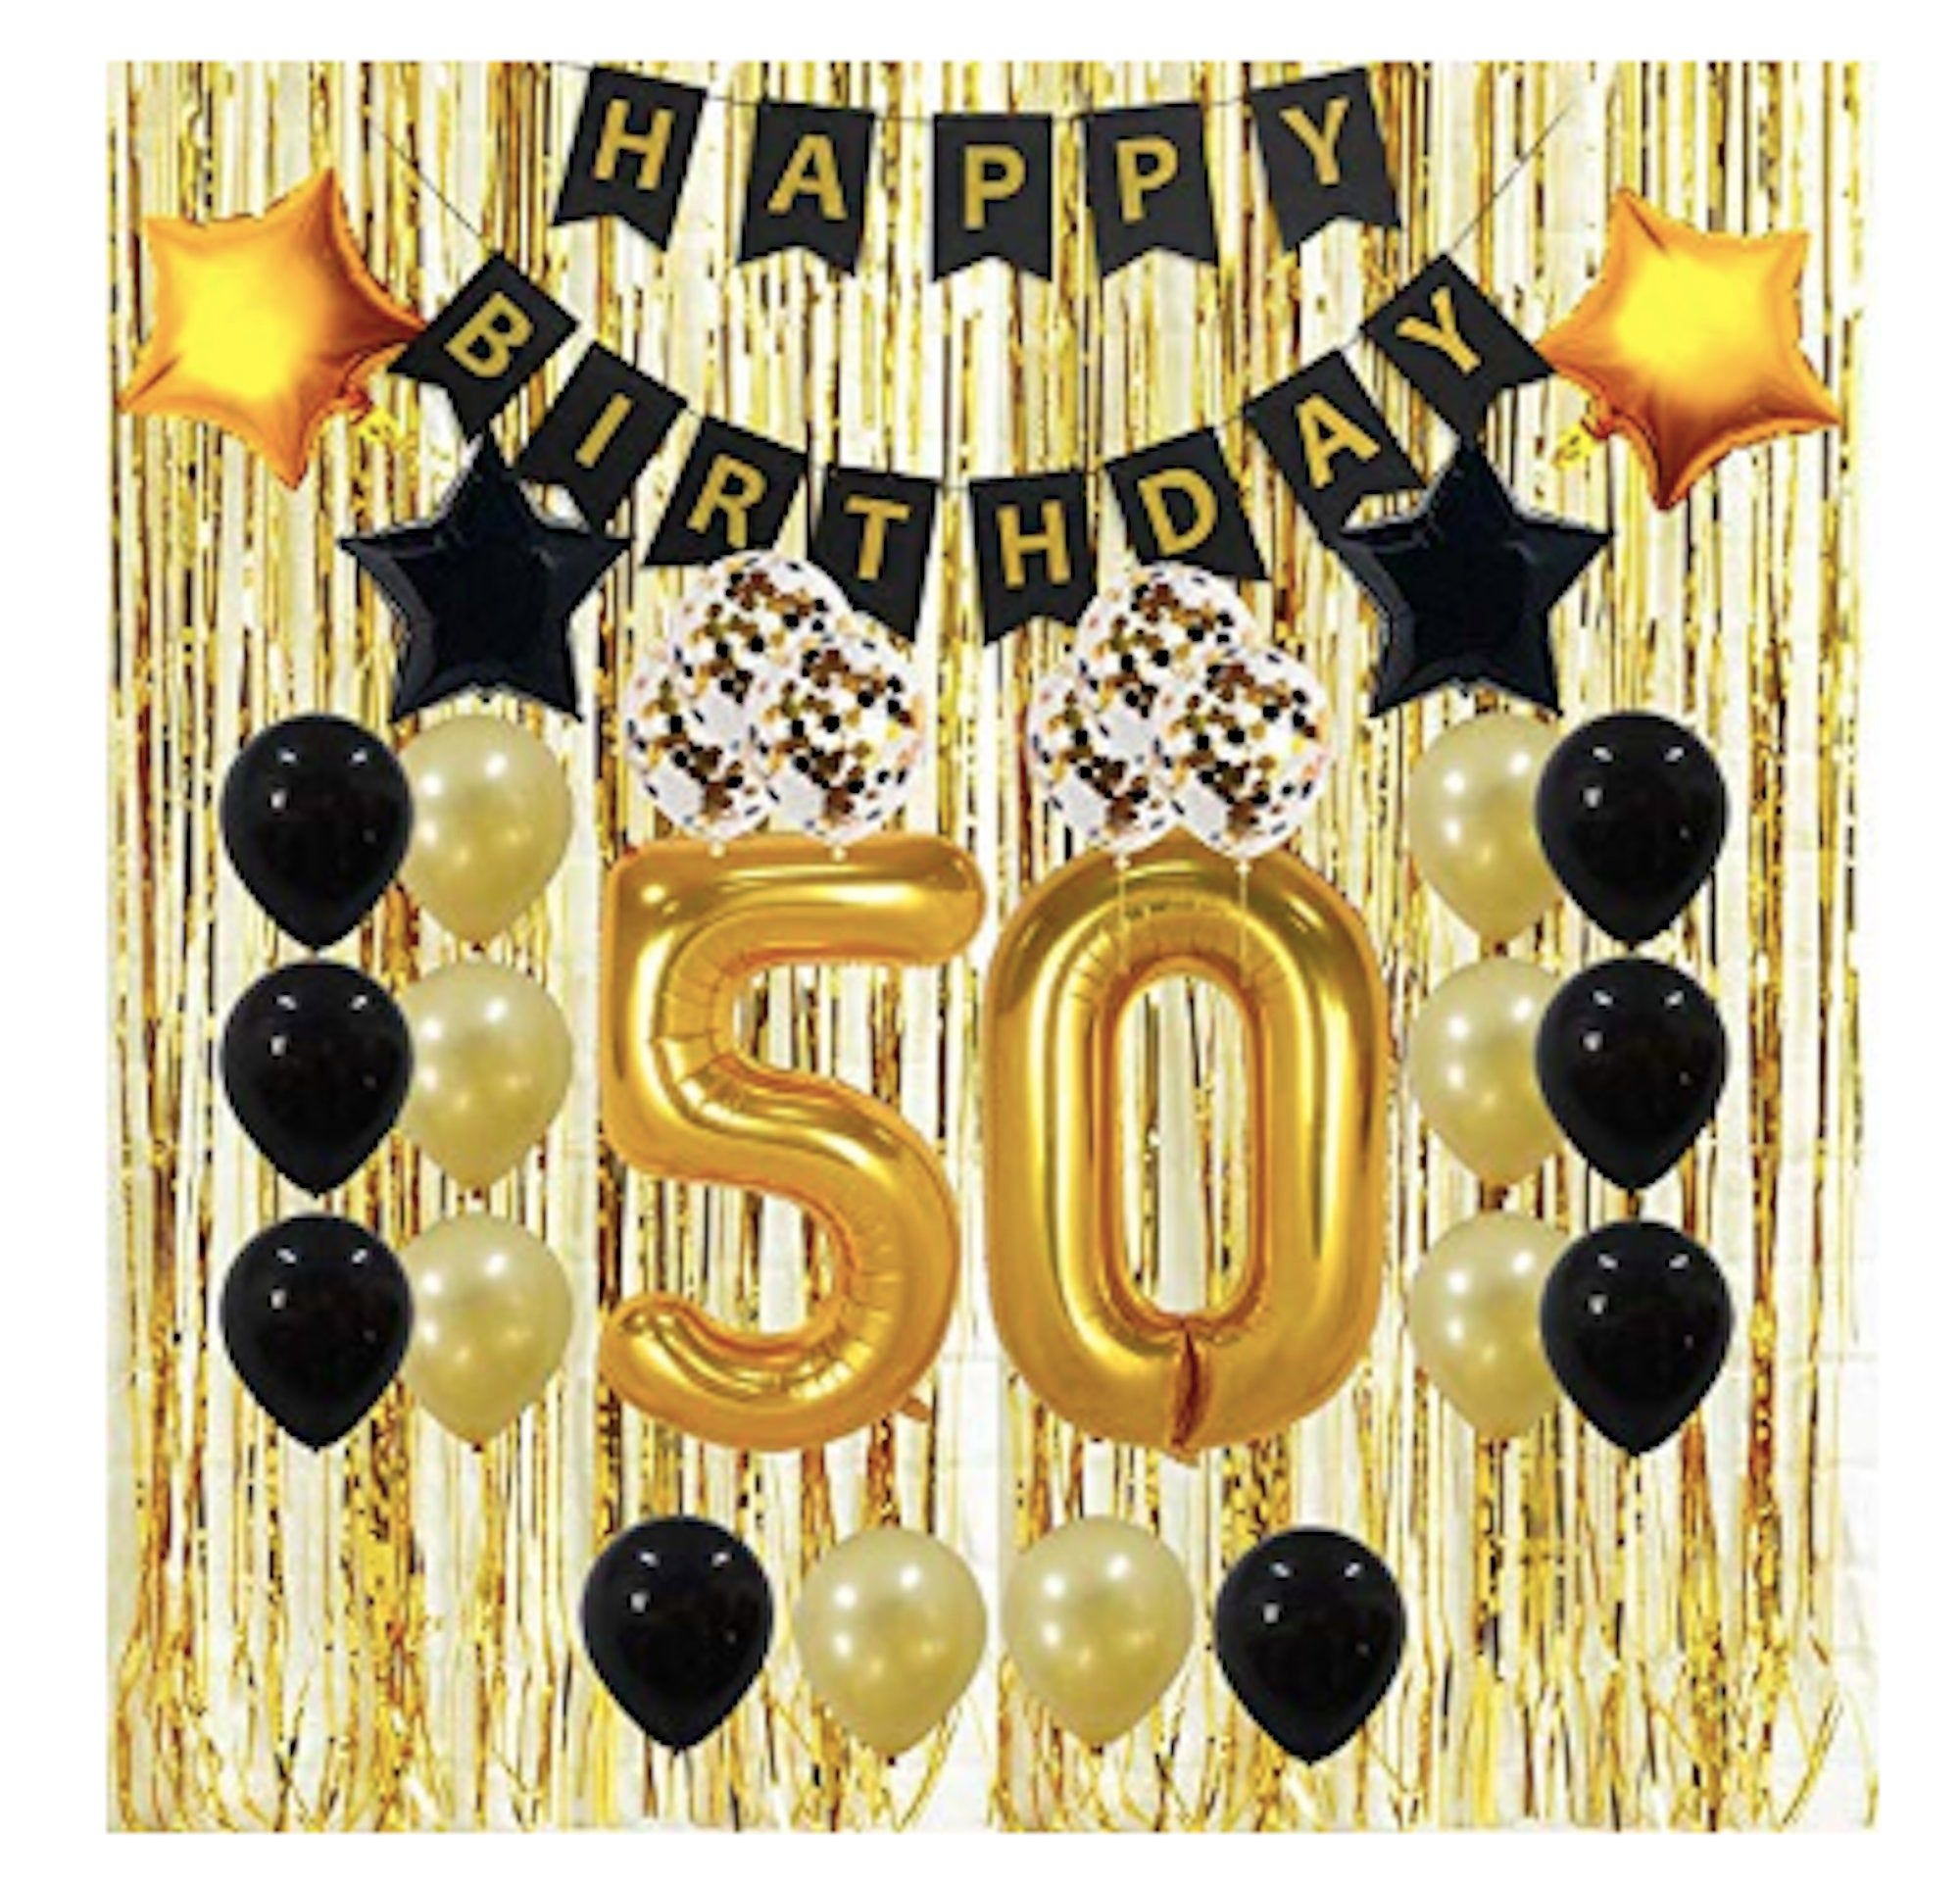 50th Party Decorations 50th Birthday Decorations Gifts For Men